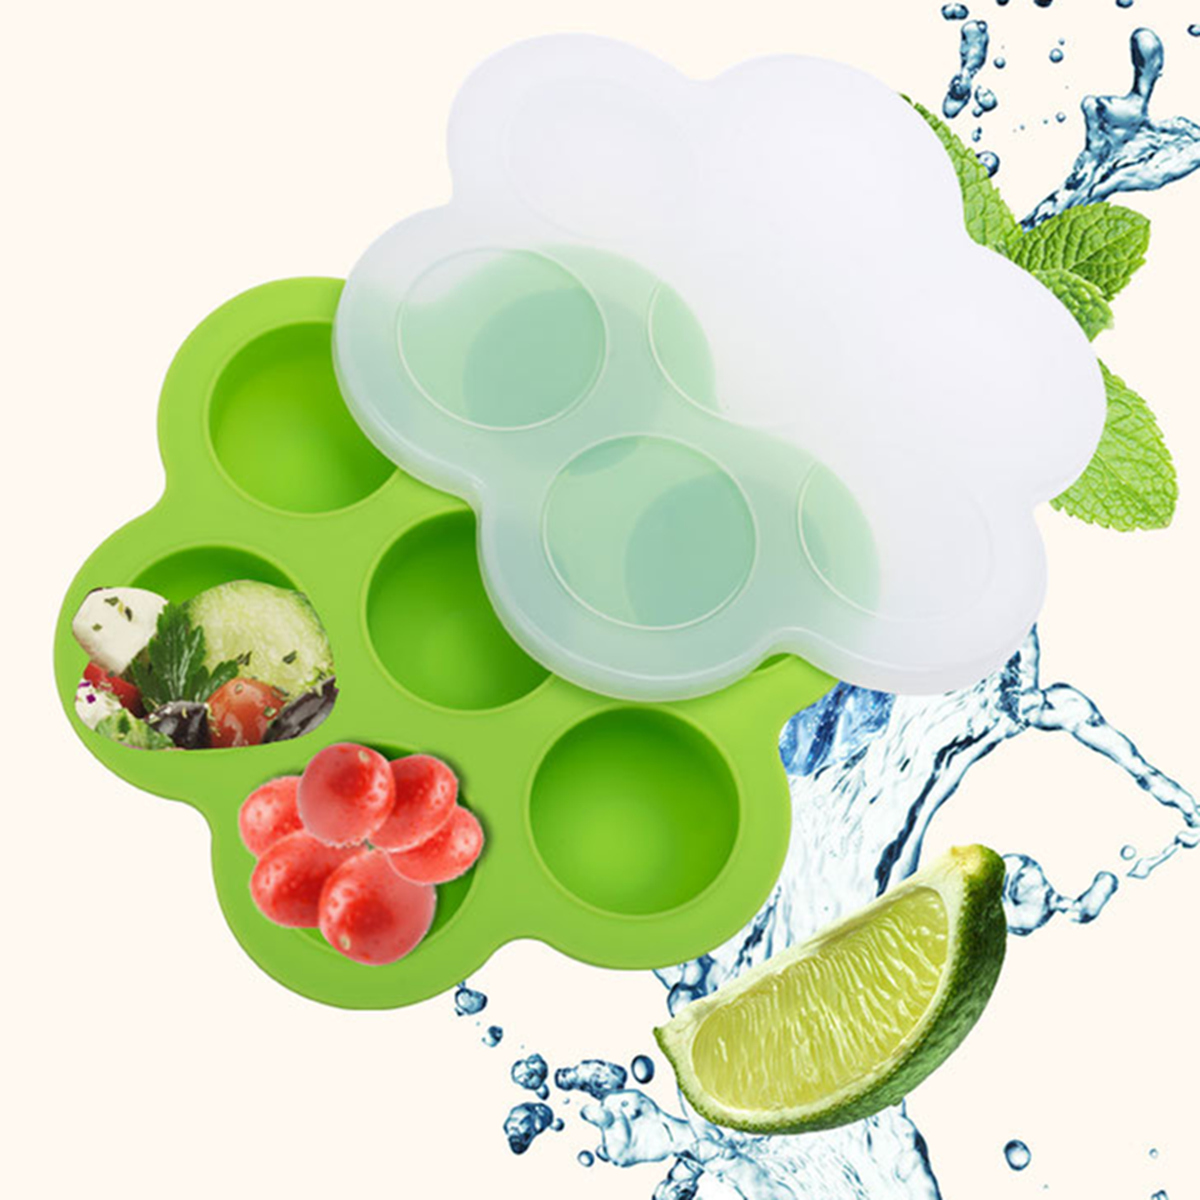 7 Holes Silicone Egg Bites Baking Mold Silicone DIY Kids Food Boxes Reusable Storage Container Freezer Tray With Lid Baking Tool